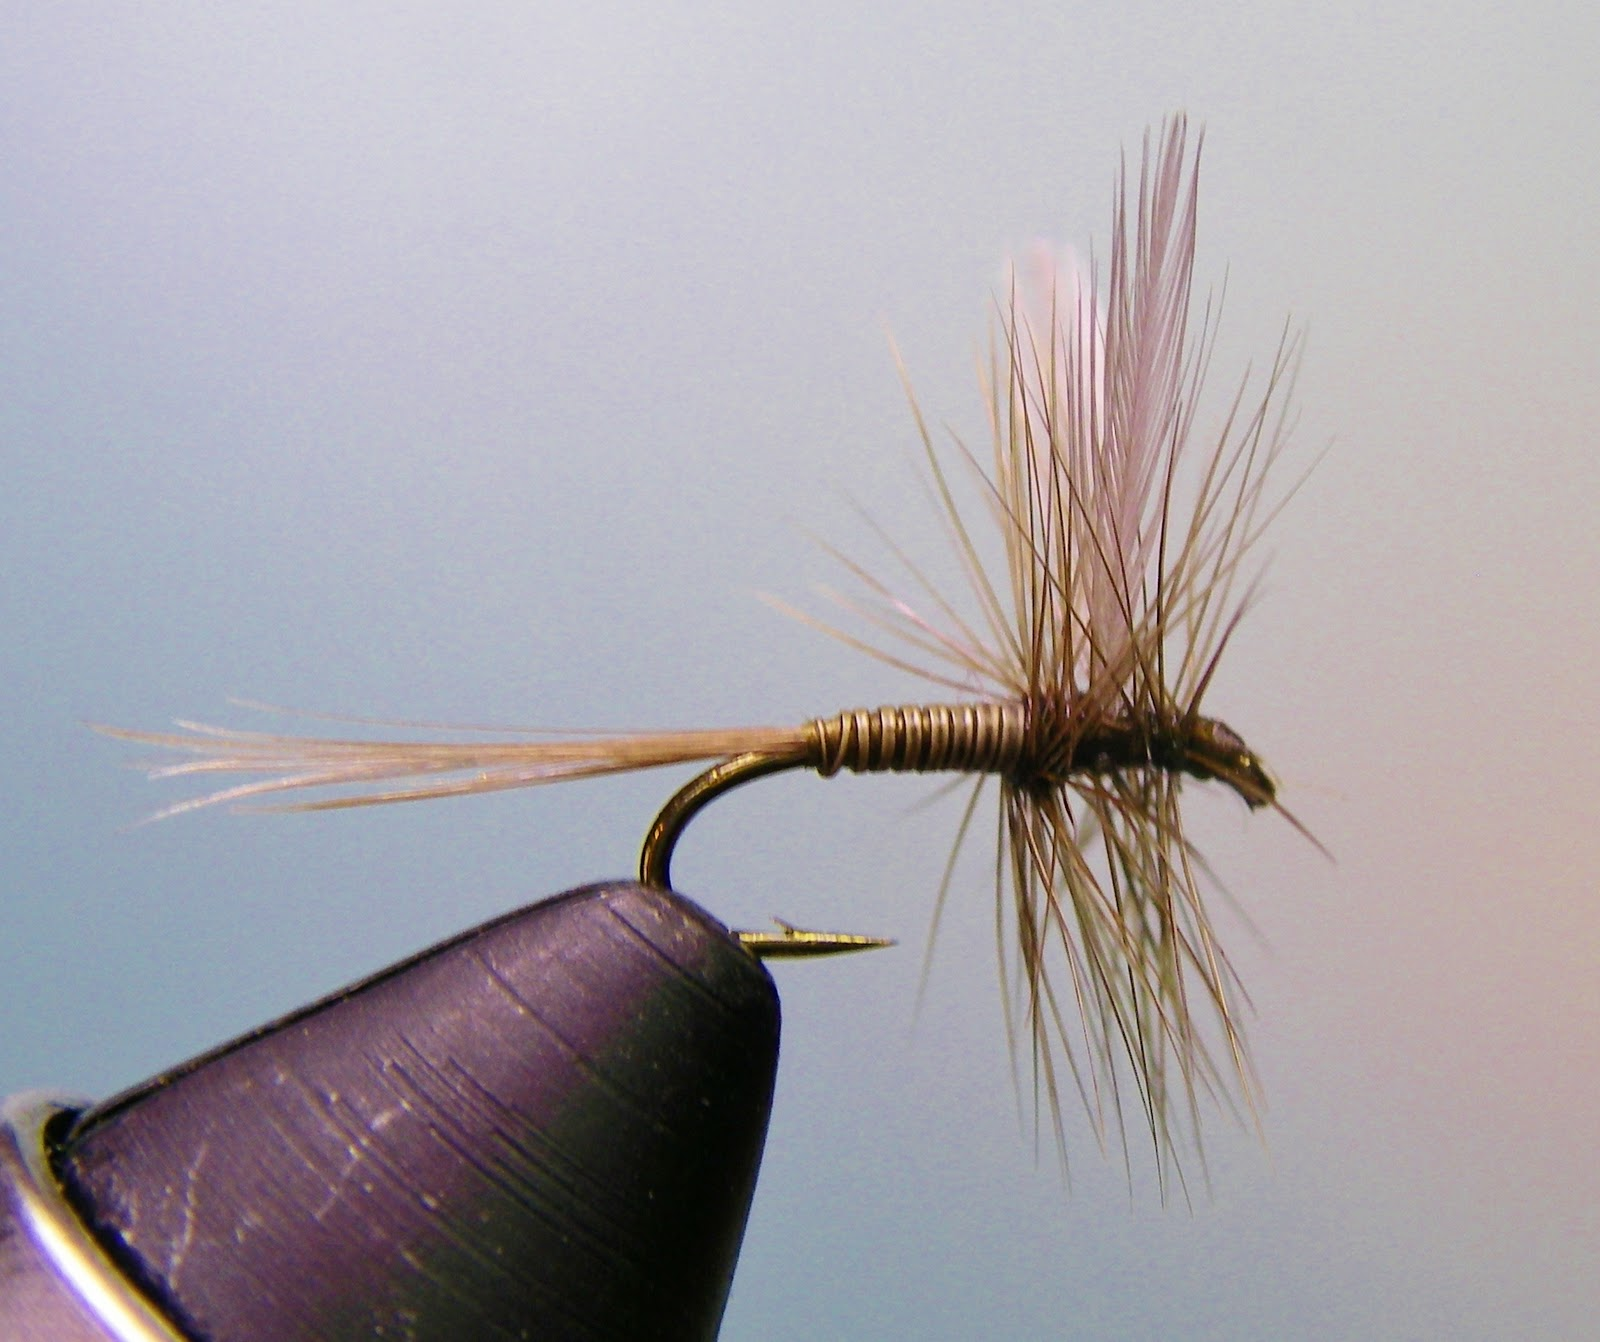 Burnt Drags: Tying with porcupine quills